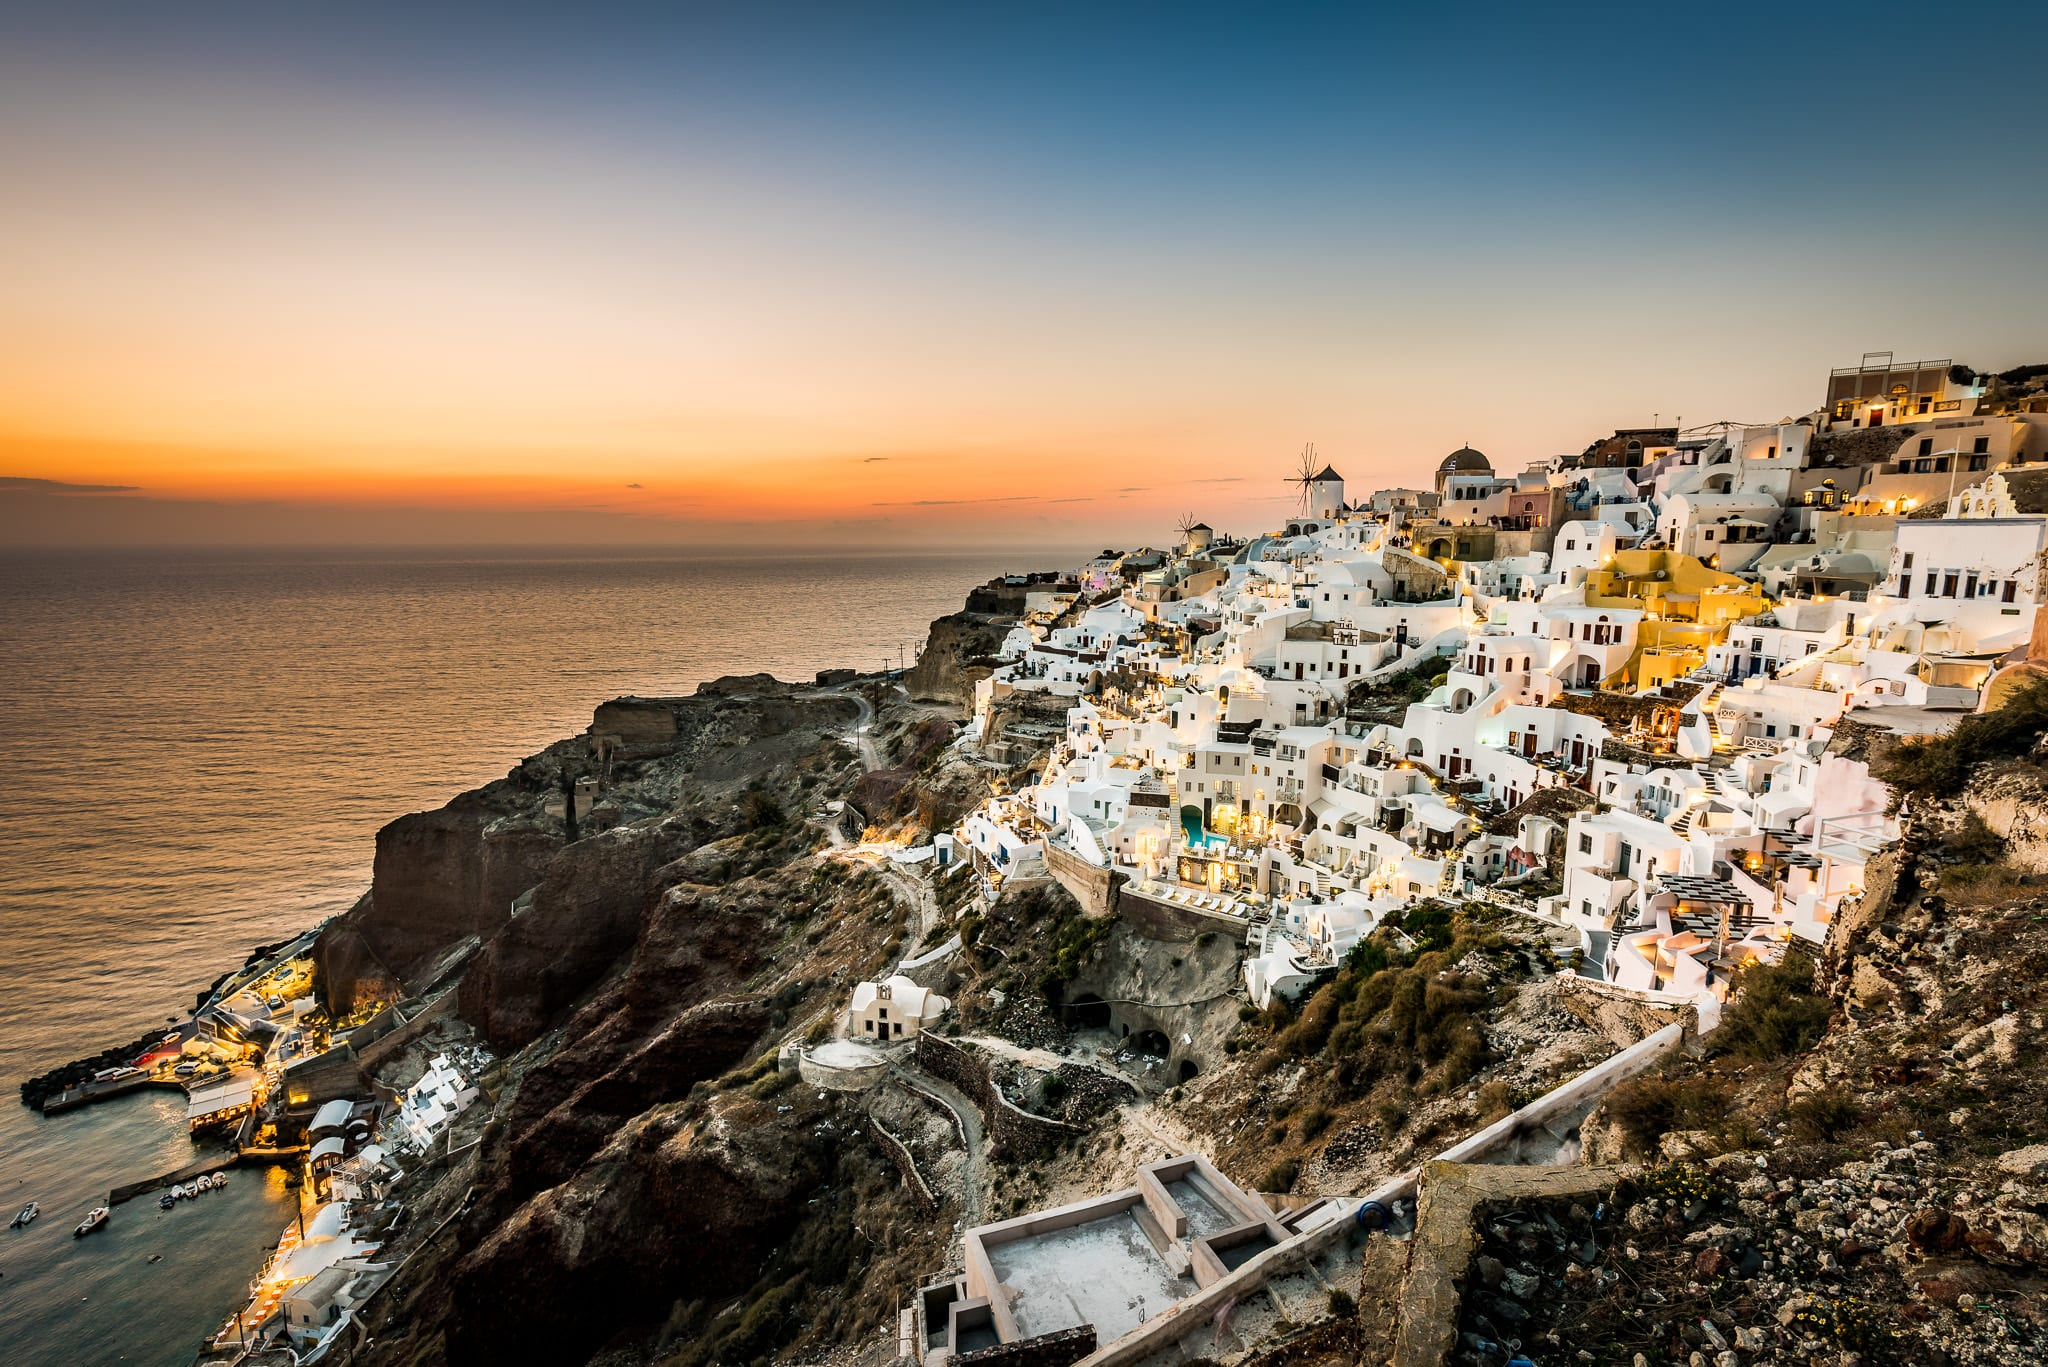 Beautiful sunset view from Oia Castle overlooking Amoudi Bay and the colorful village of Oia on the Greek island of Santorini